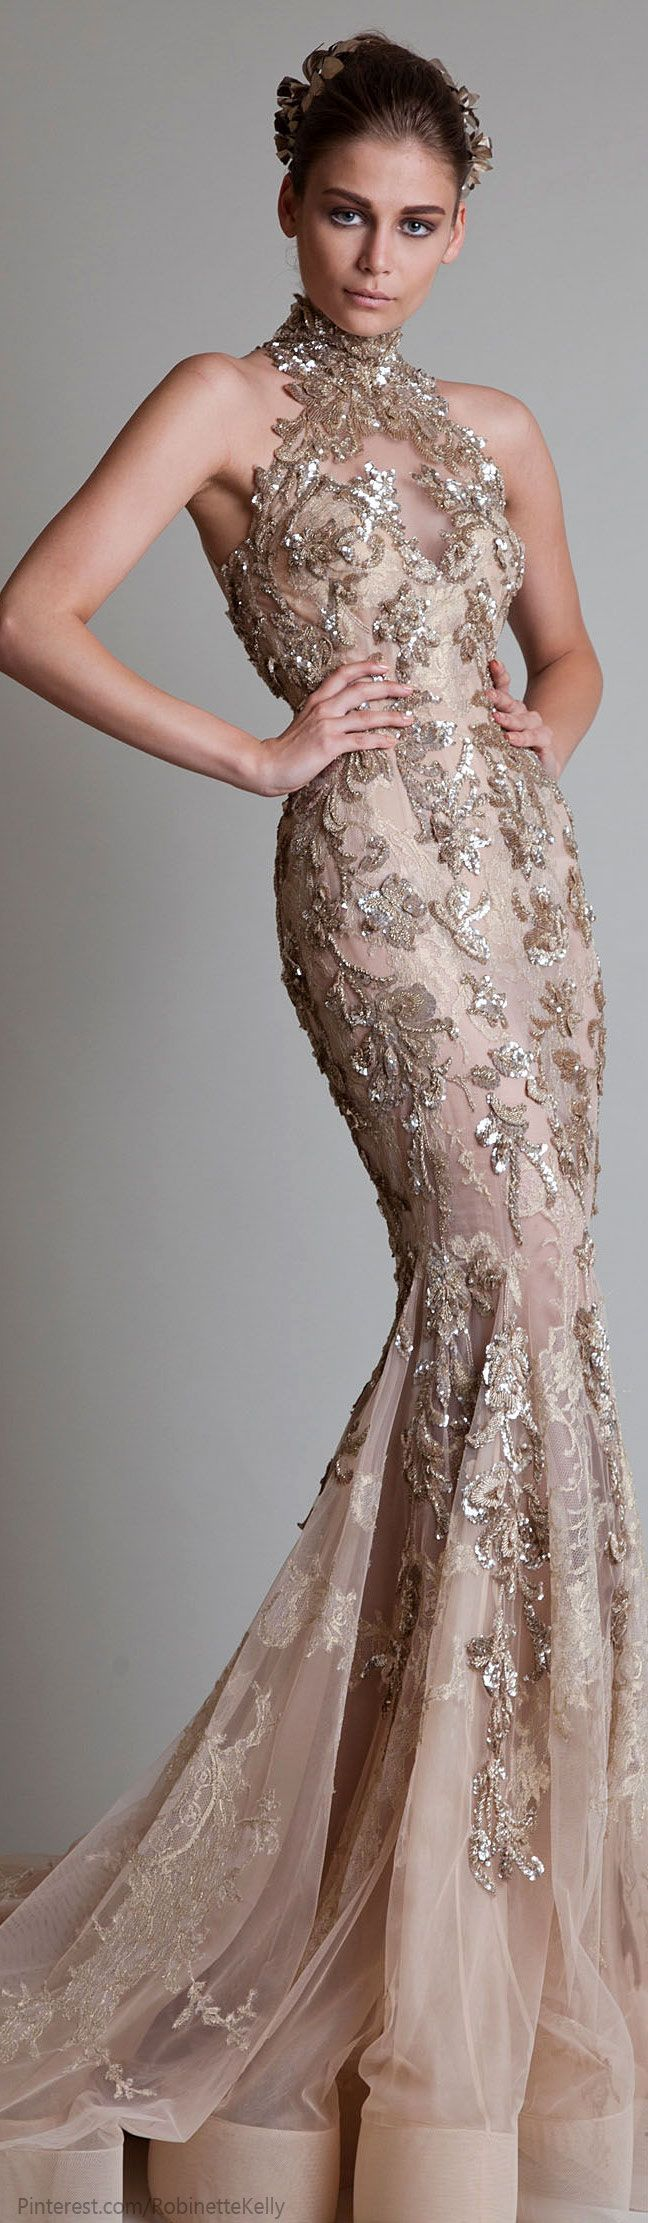 1000  ideas about Couture Dresses on Pinterest  Couture Queen ...